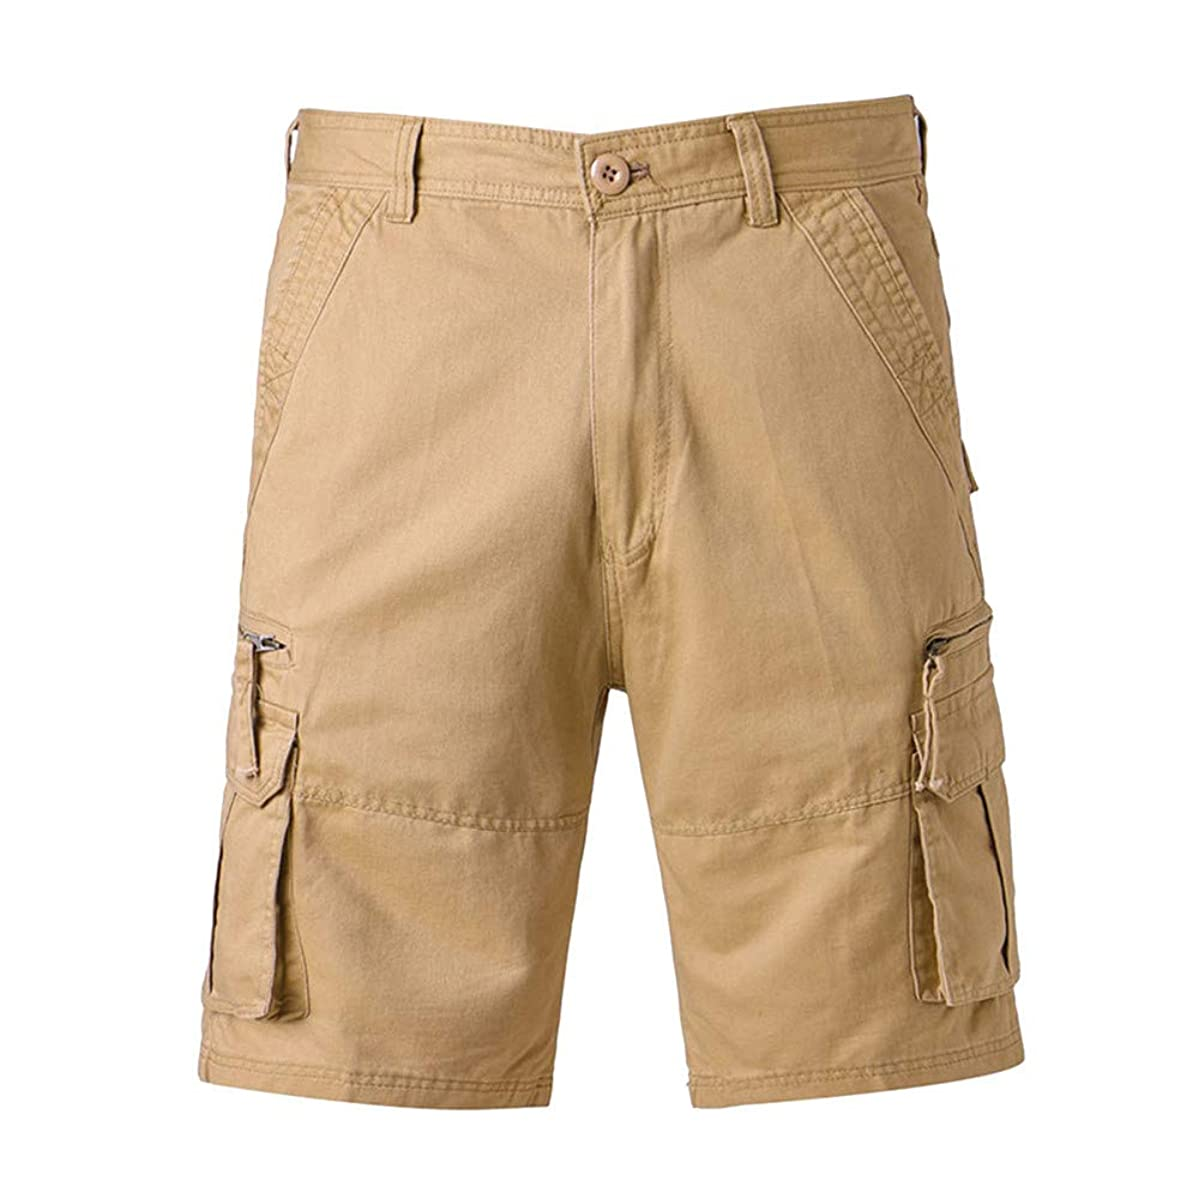 Bsjmlxg Men's Loose Straight Multi-Pocket Cargo Shorts Relaxed Fit Outdoor Casual Outdoor Wear Training Combat Utility Shorts